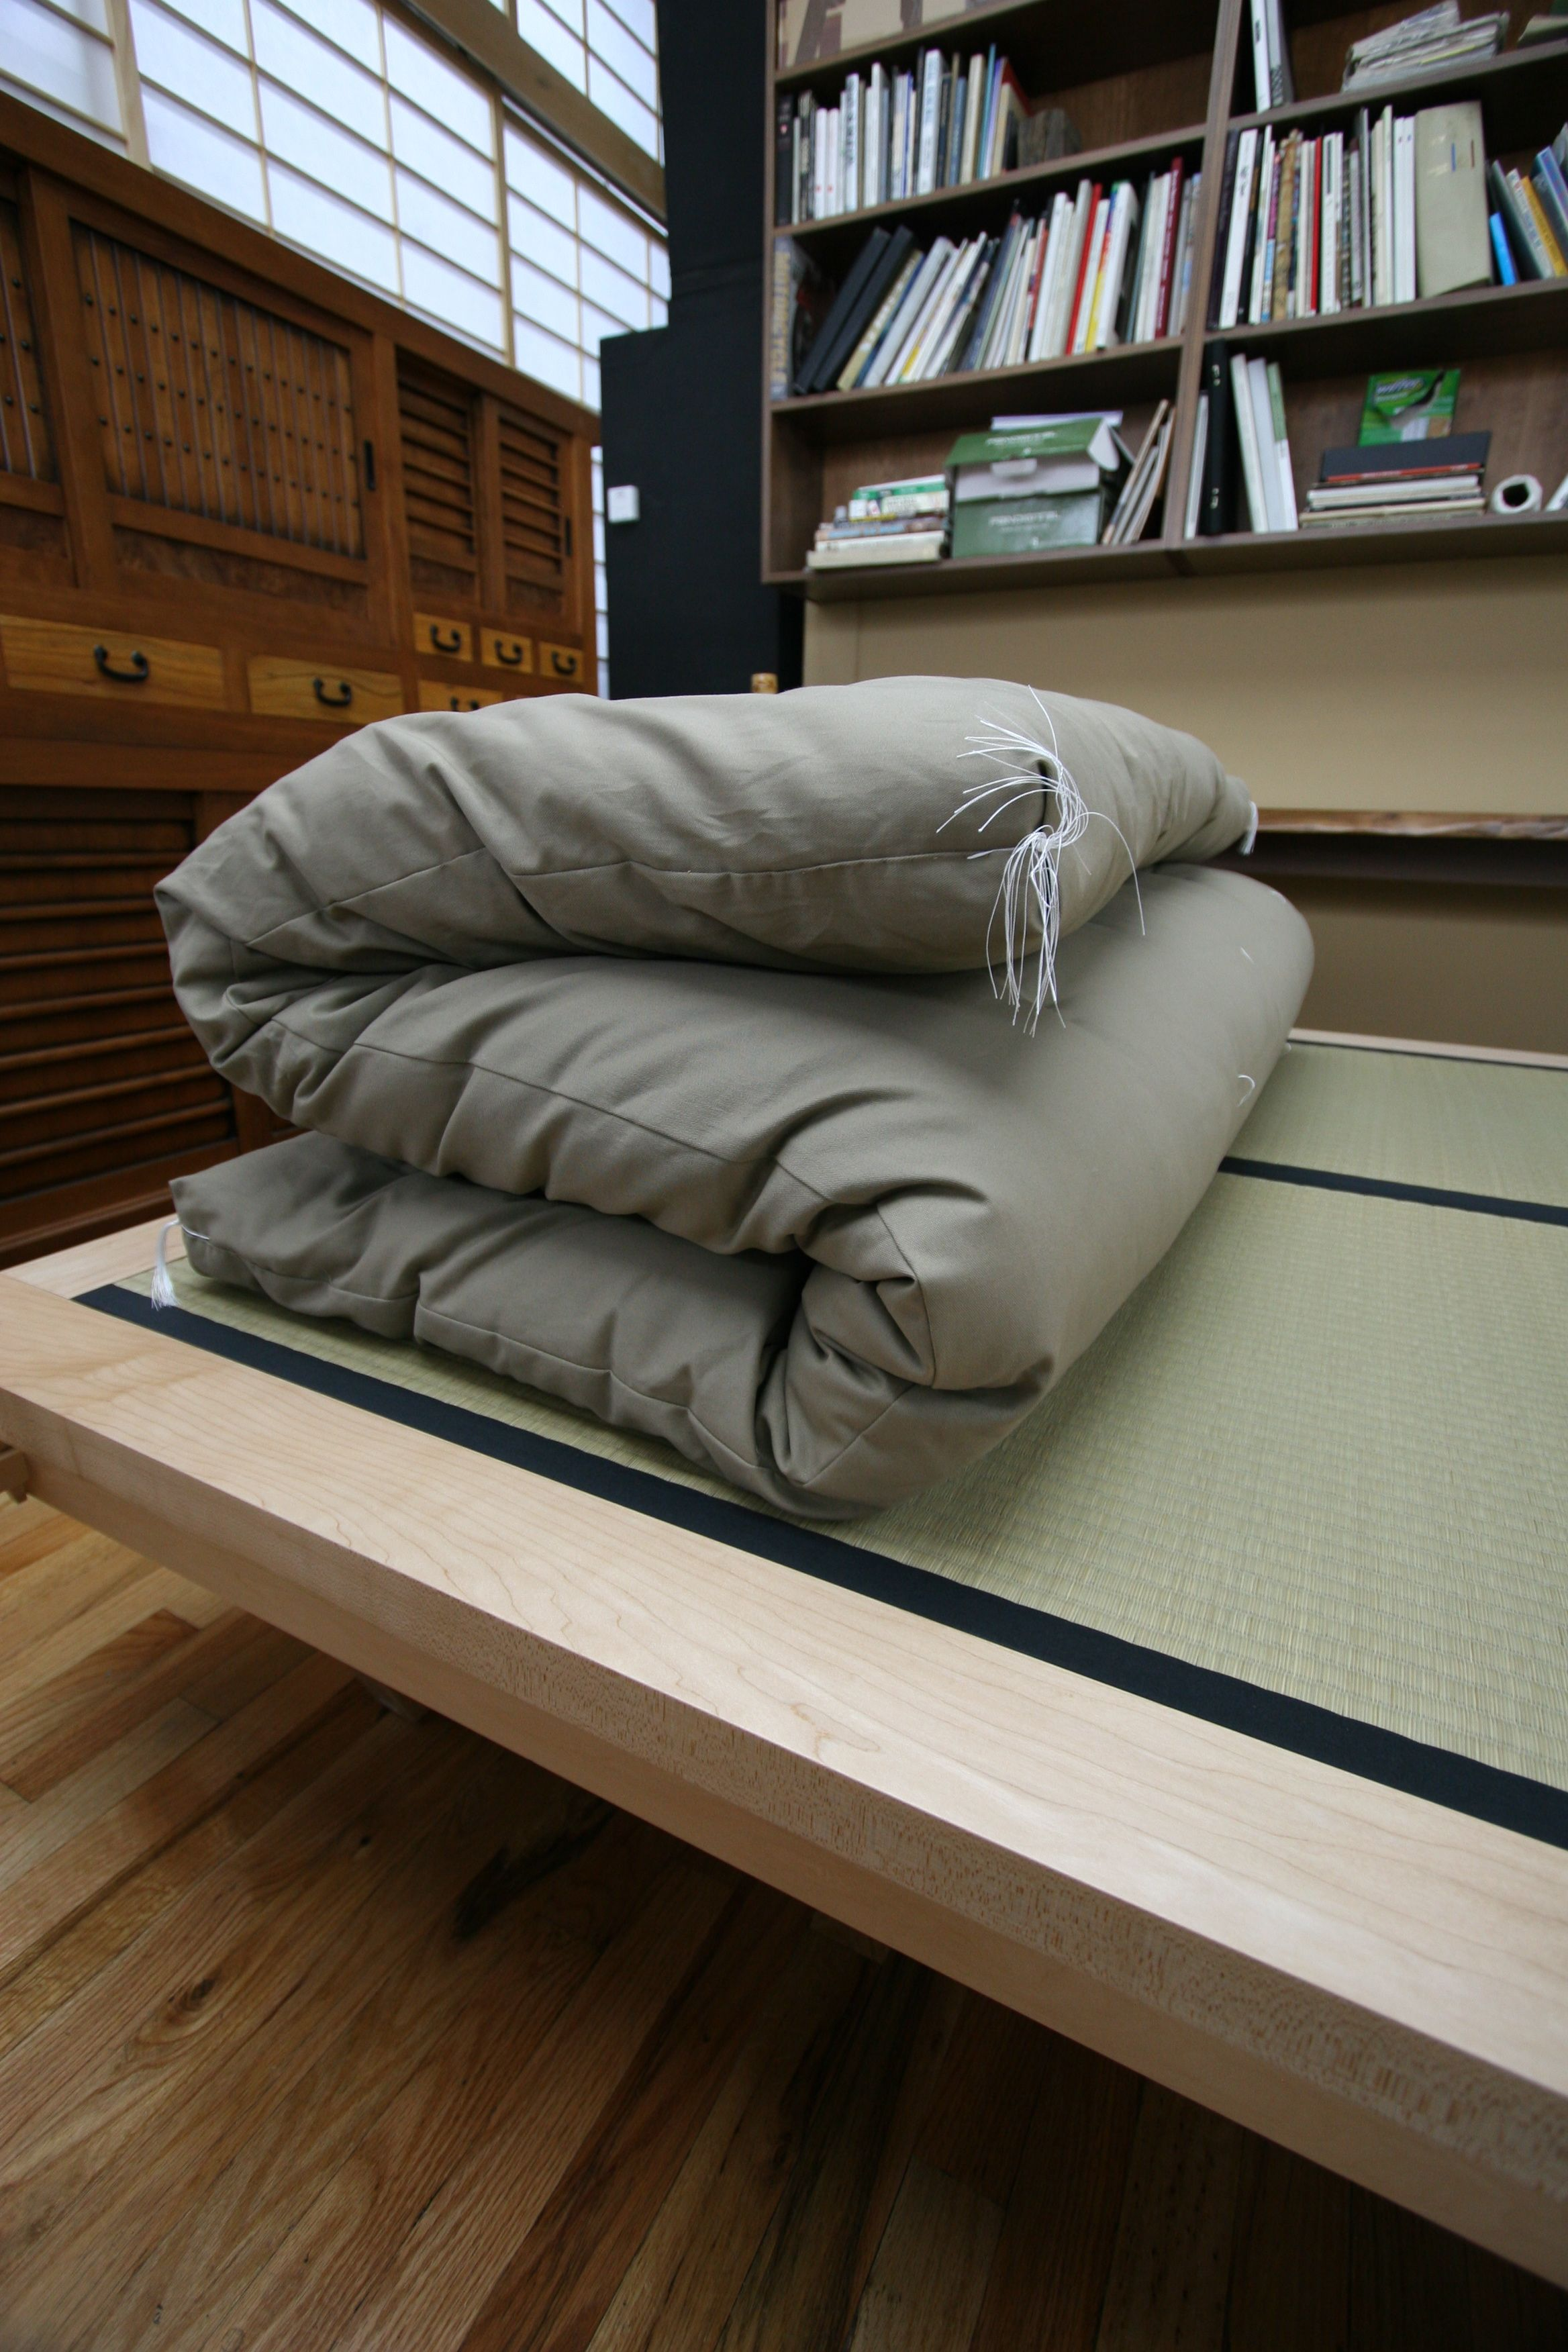 Traditional Japanese Futon Mattress